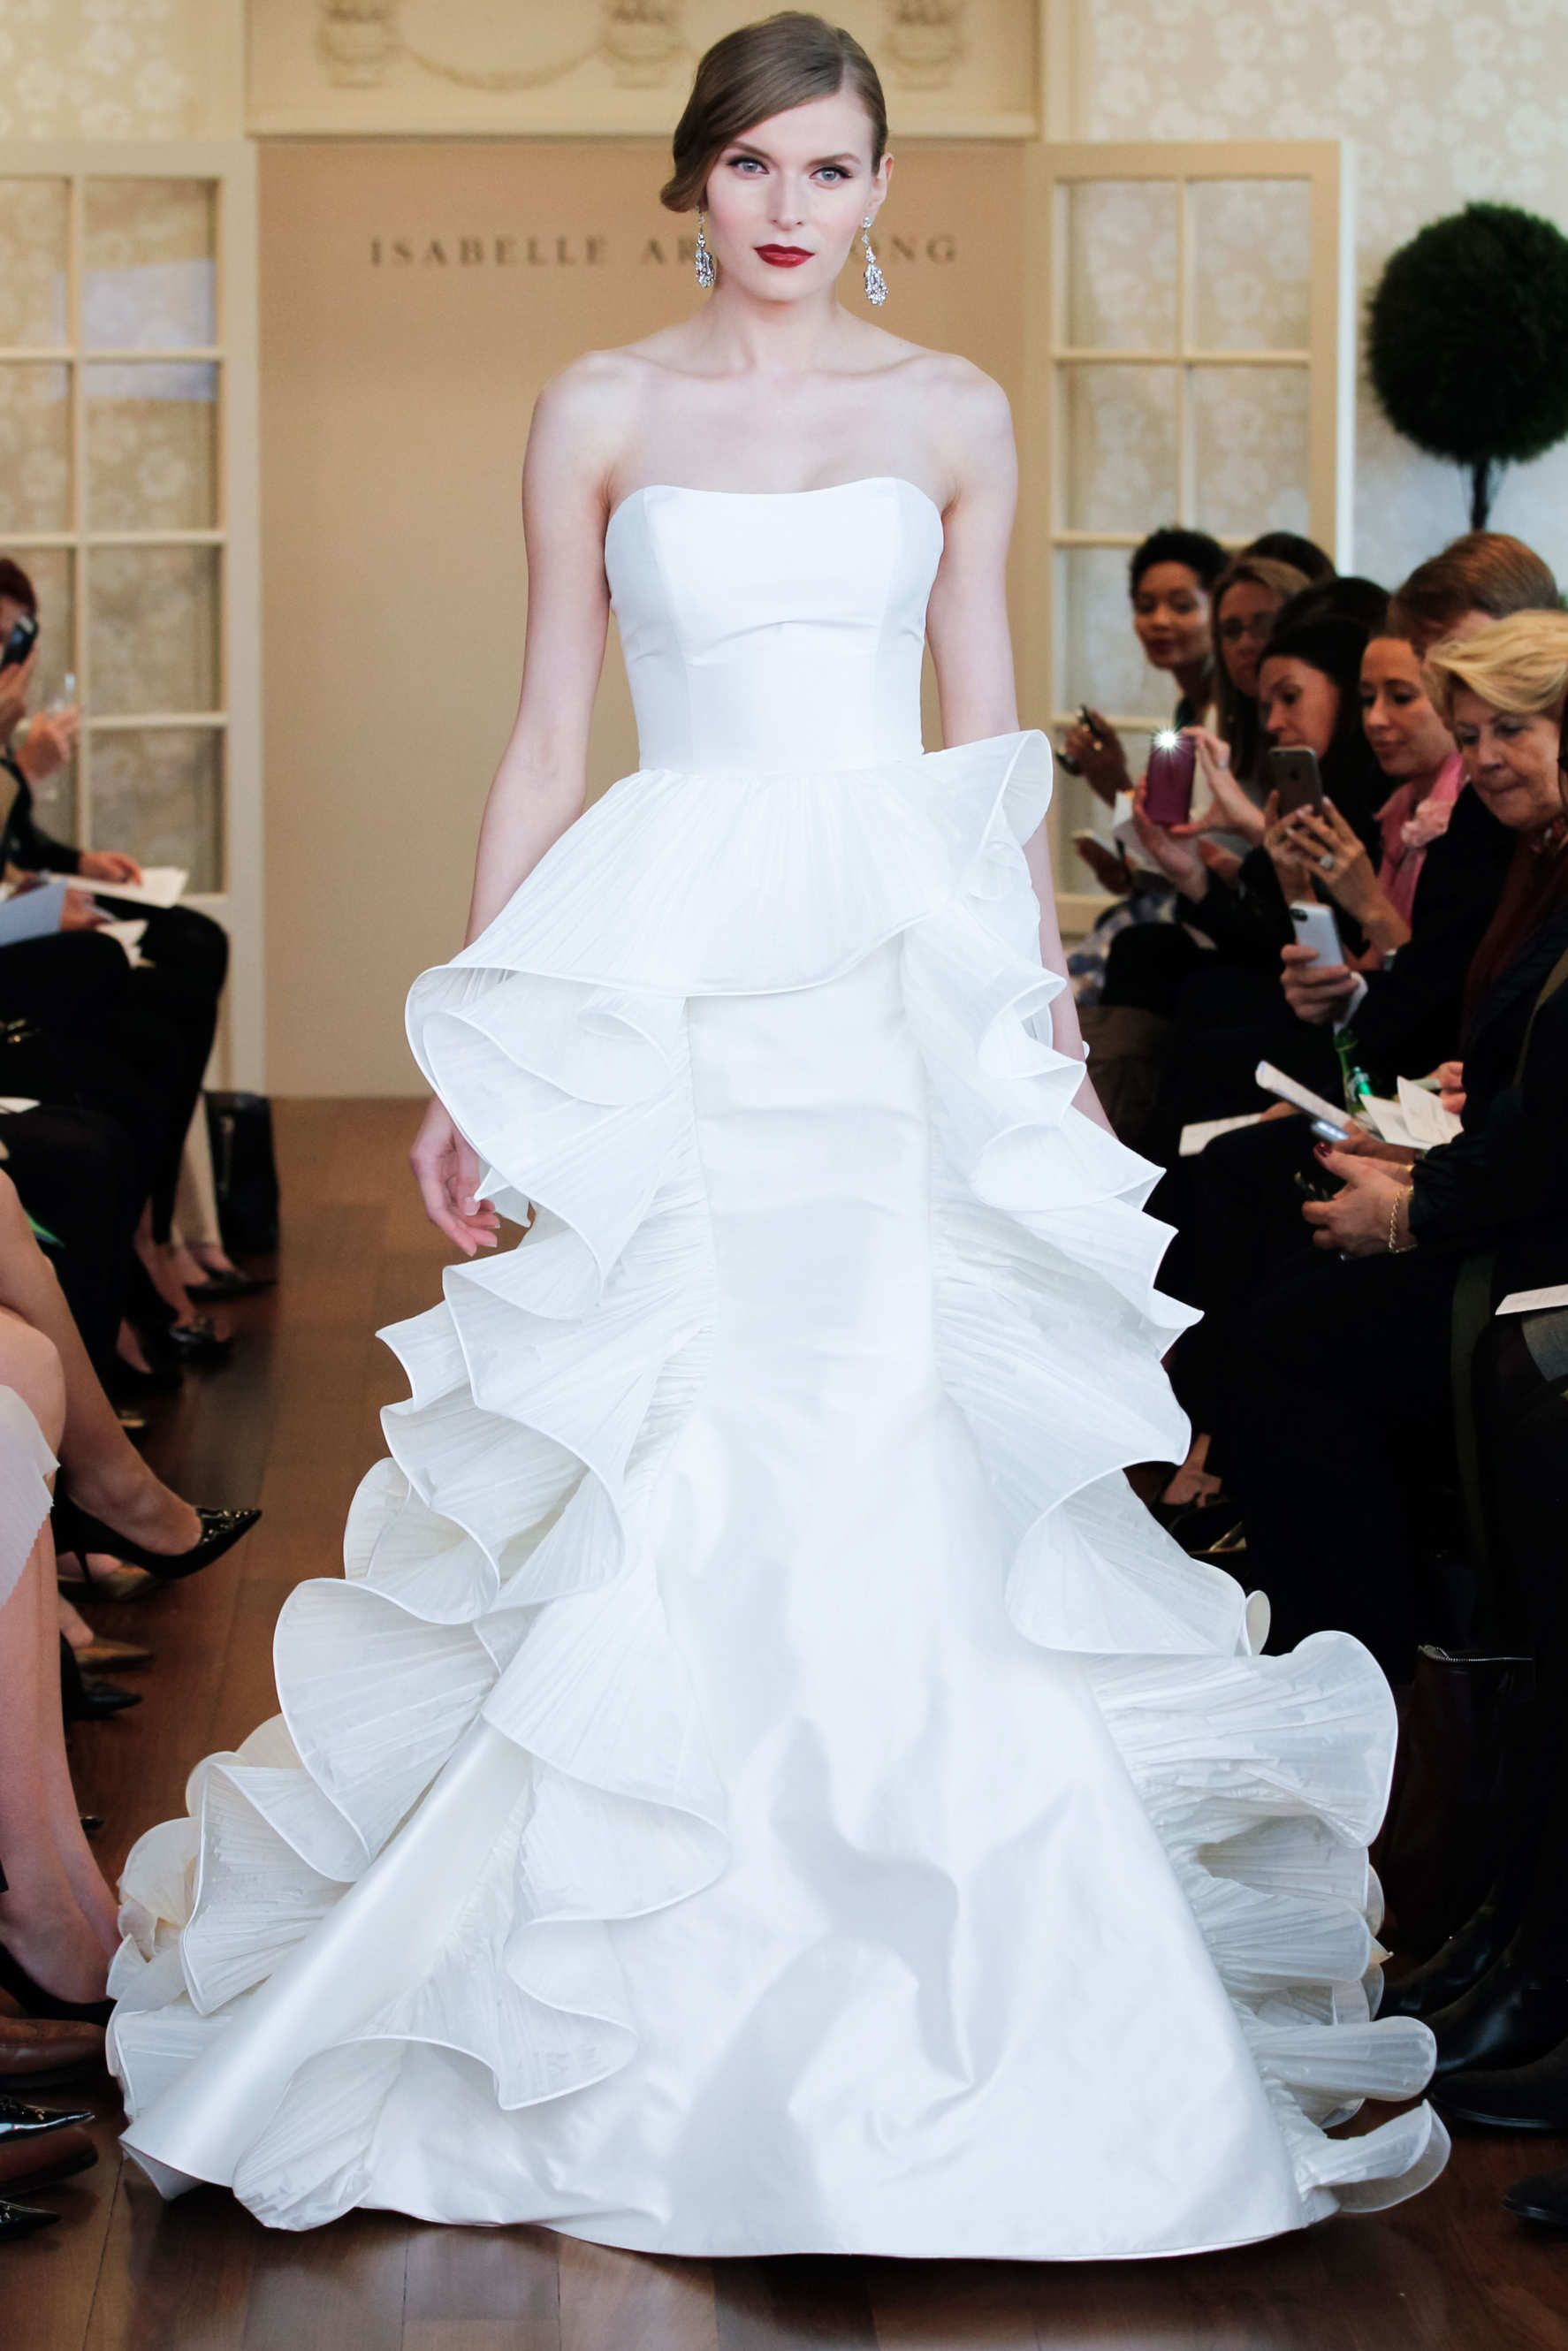 Isabelle Armstrong Fall 2015 Bridal